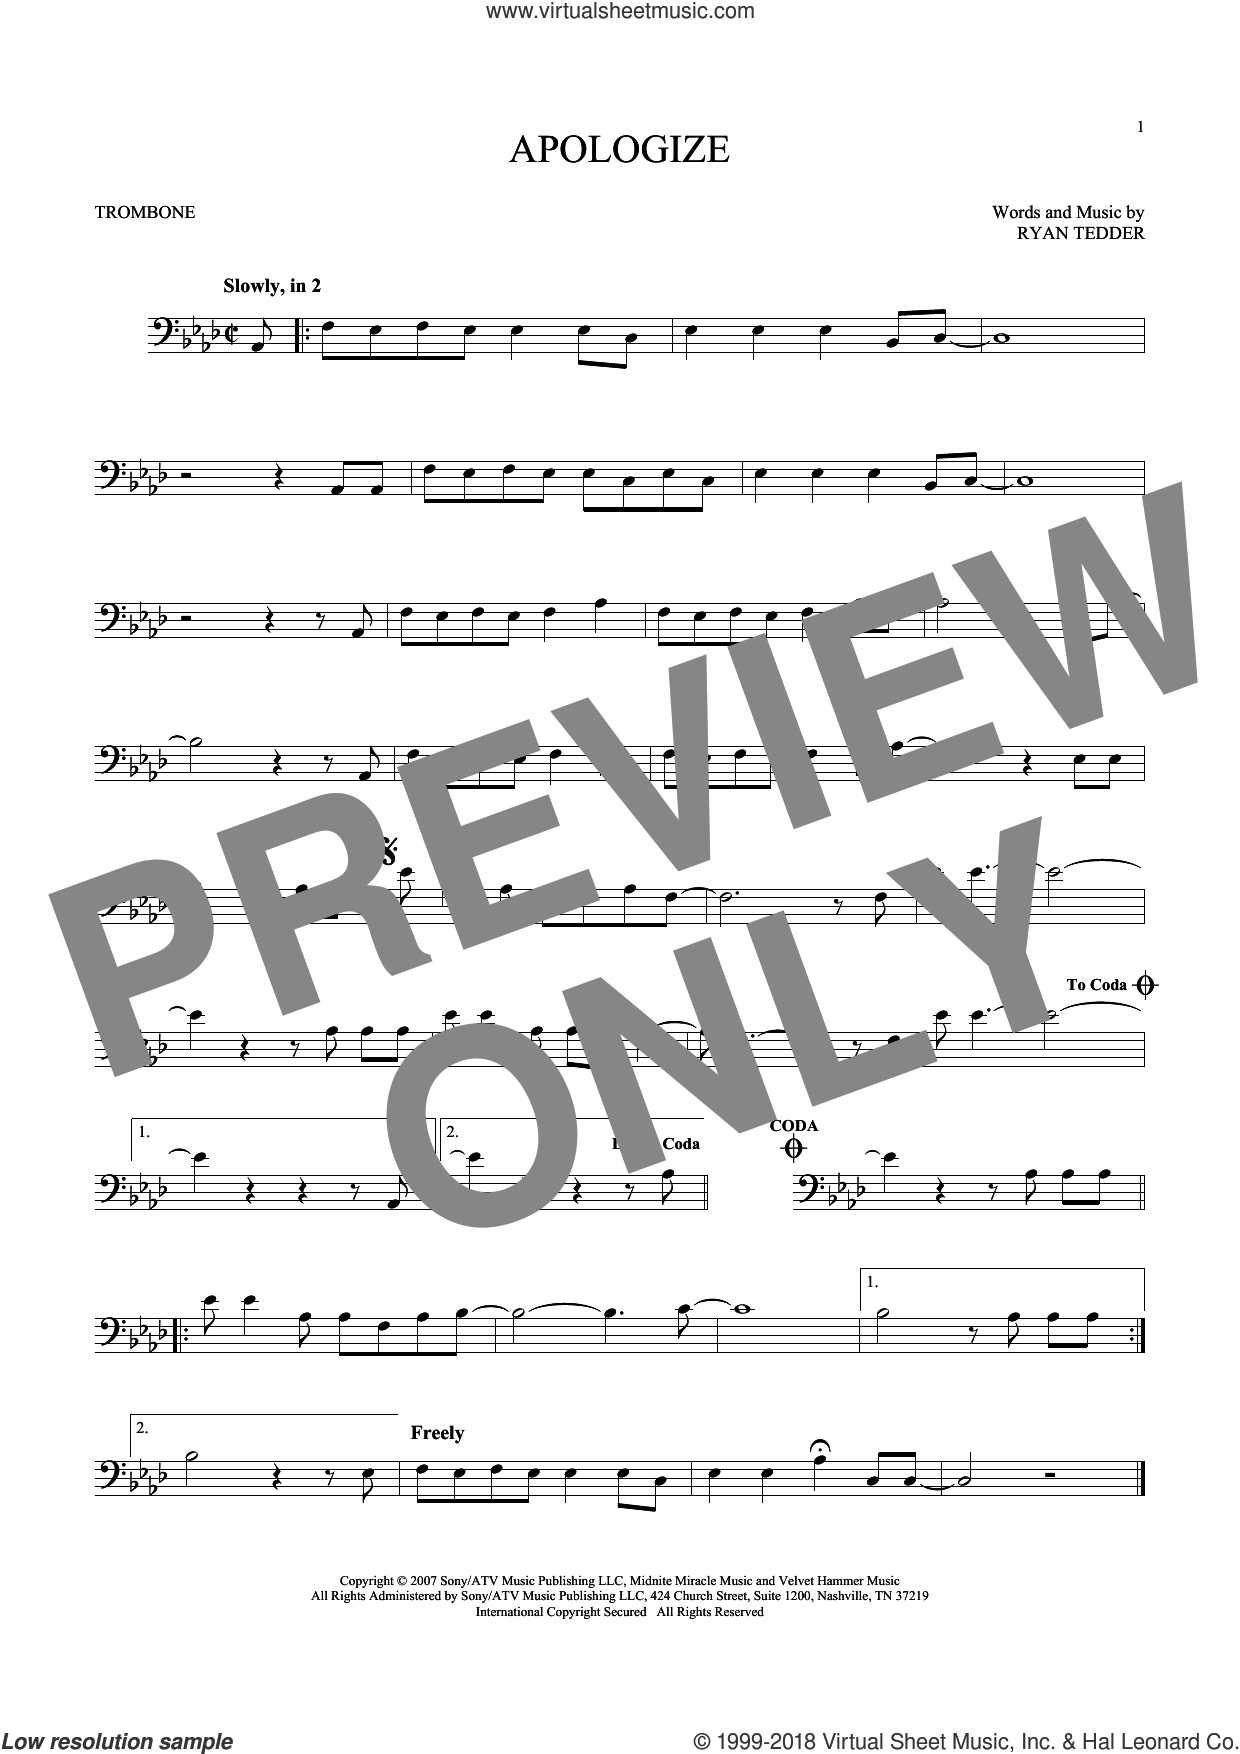 Apologize sheet music for trombone solo by Timbaland featuring OneRepublic and Ryan Tedder, intermediate skill level